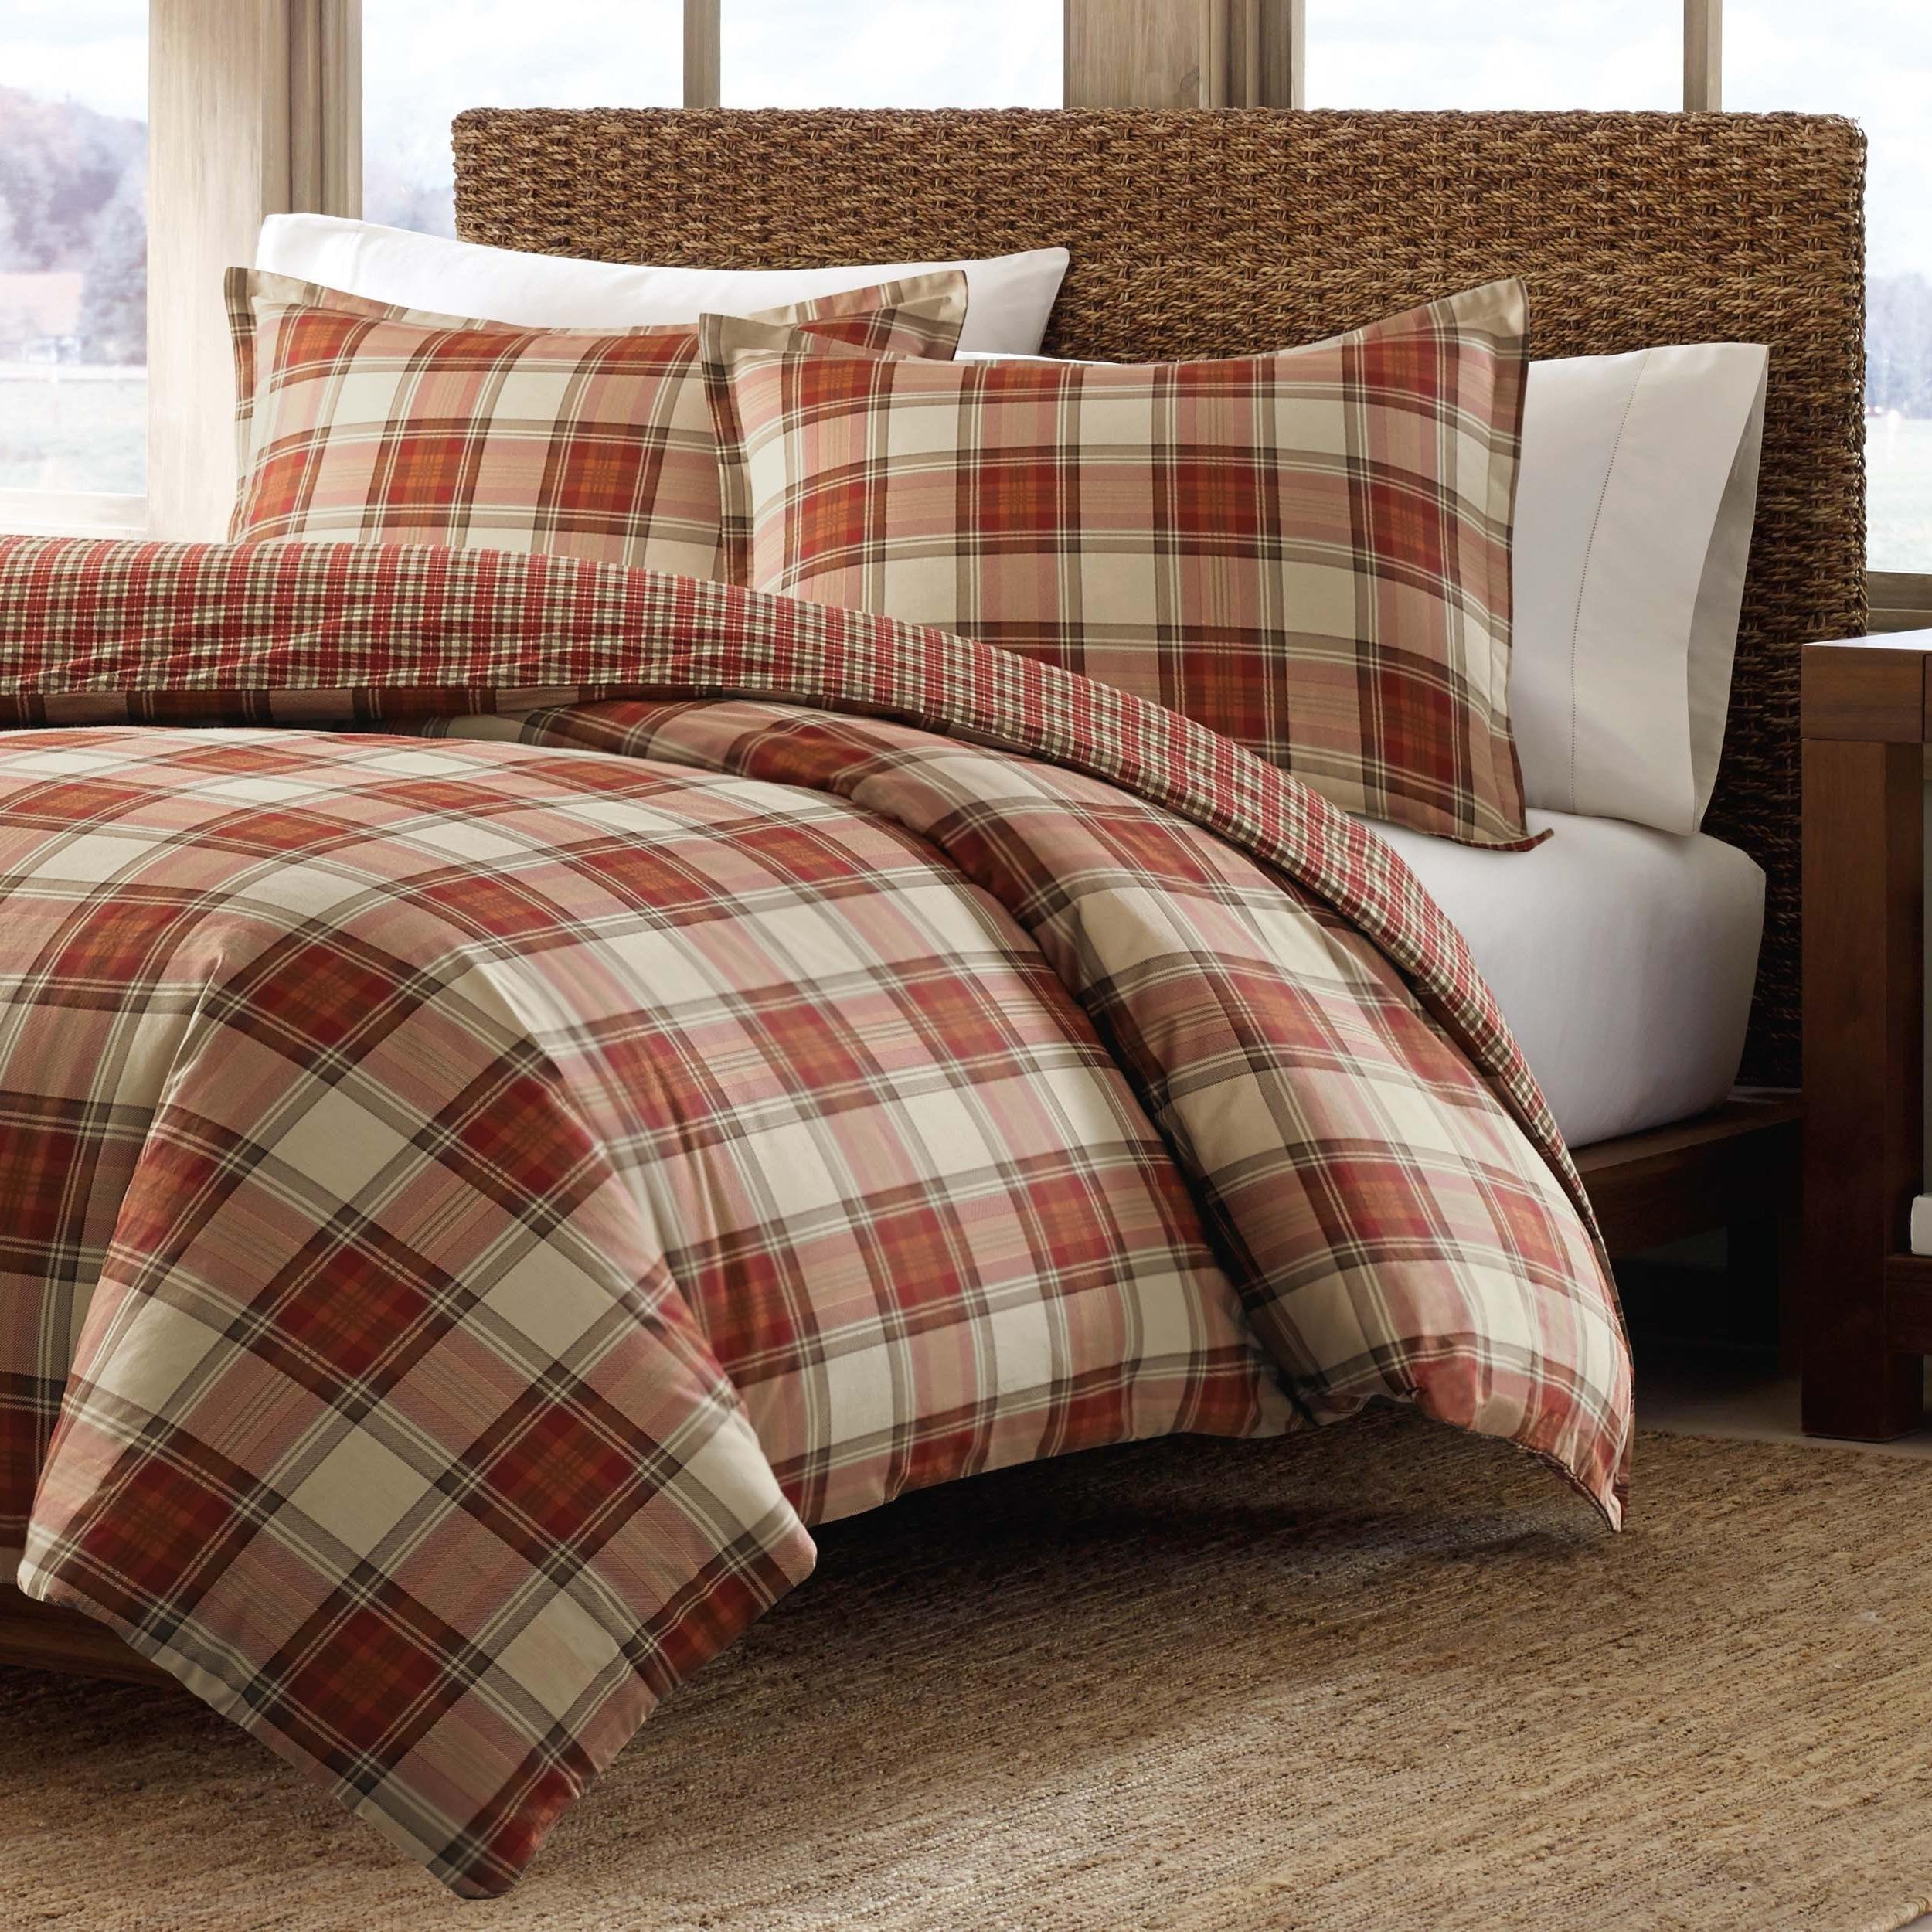 3 Piece Red Plaid King Size Duvet Cover Set, Cabin Themed Lodge Country Checkered Bedding Squared Tartan Madras Rustic Lumberjack Pattern Cottage Checked Woods, Cotton